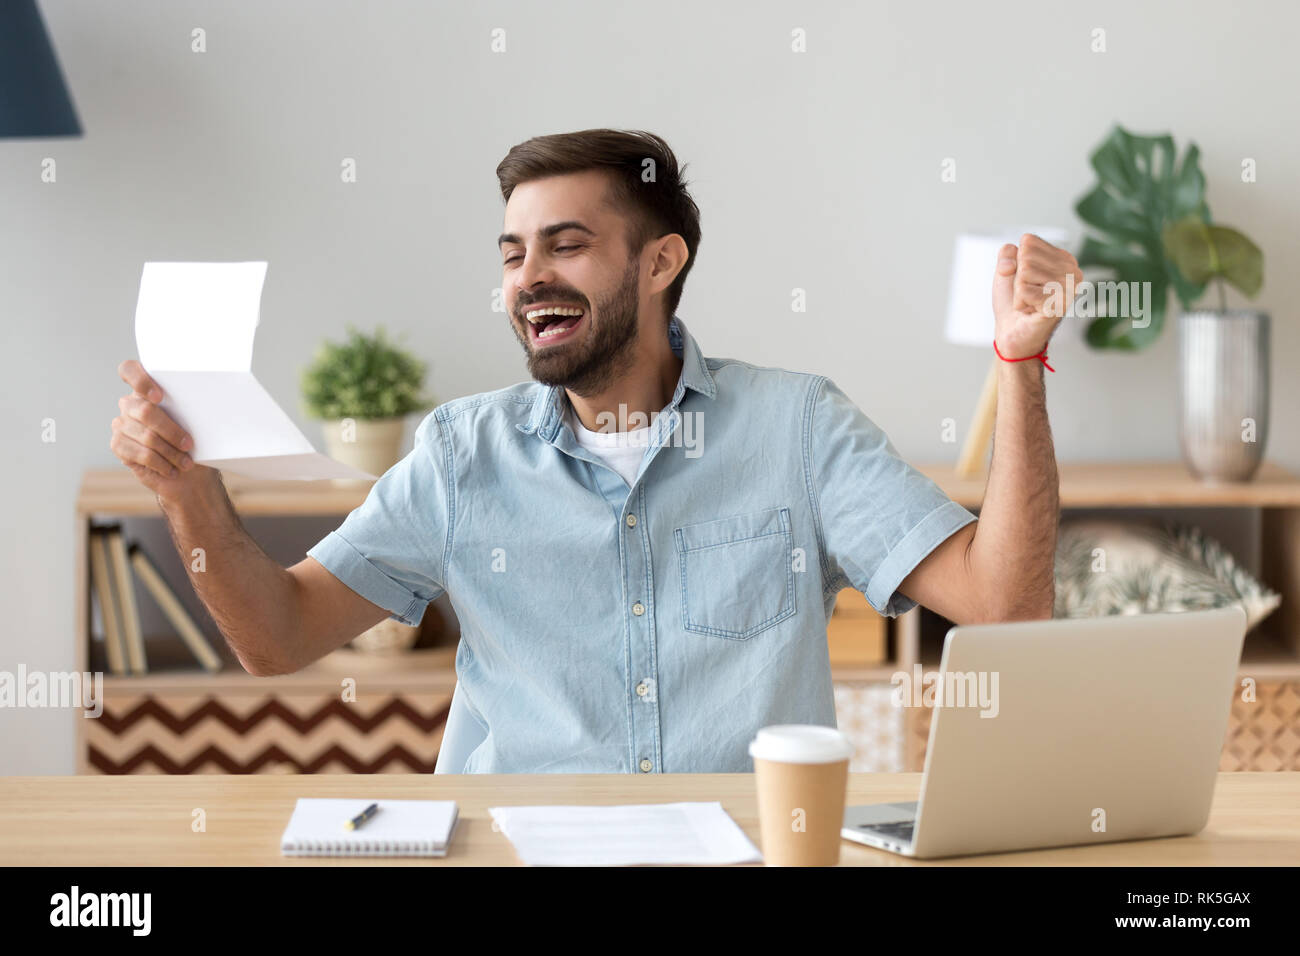 Happy young man excited reading good news holding mail letter - Stock Image